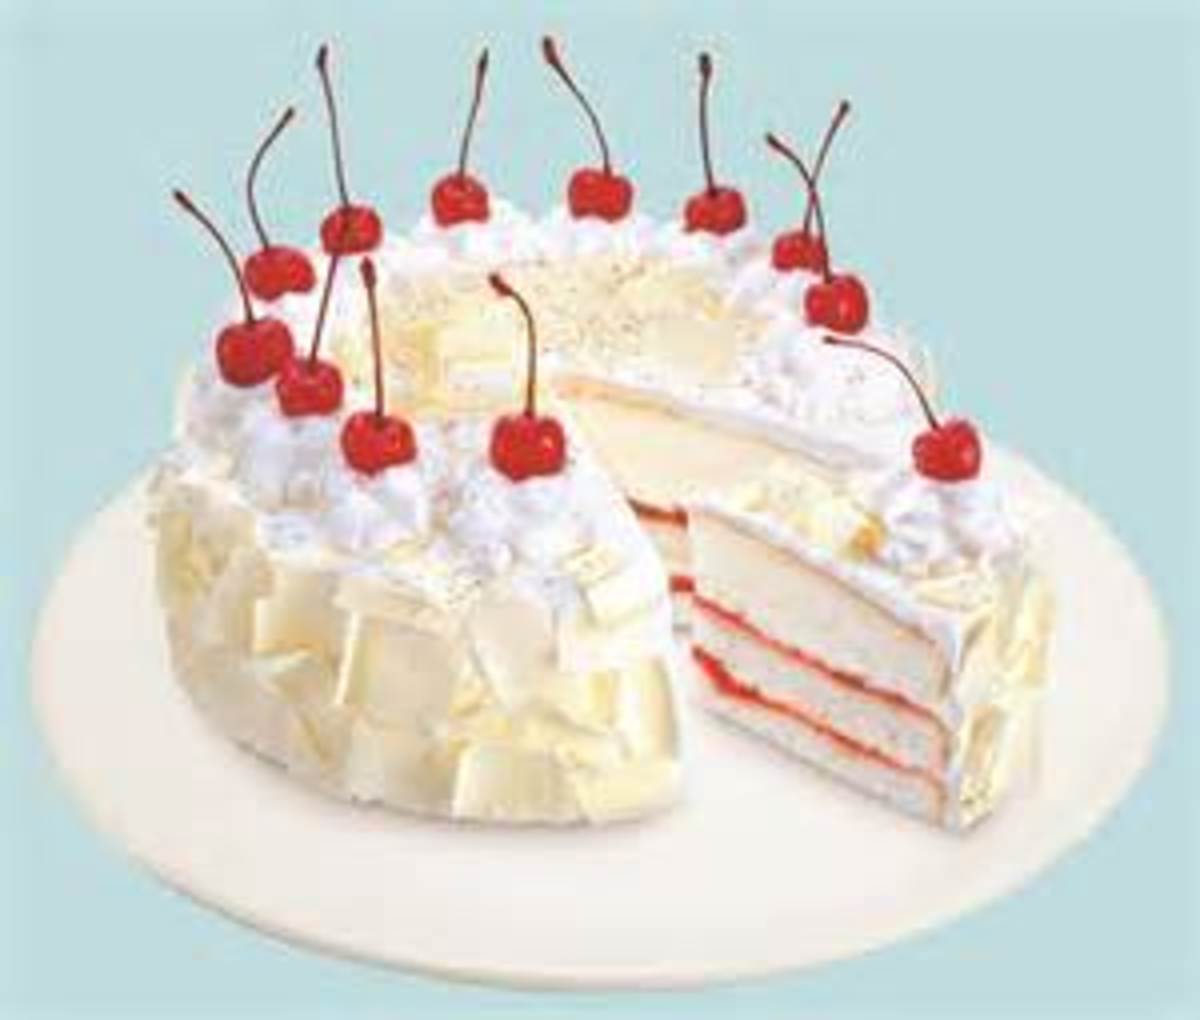 White cake with Cherry filling and topped with cherries